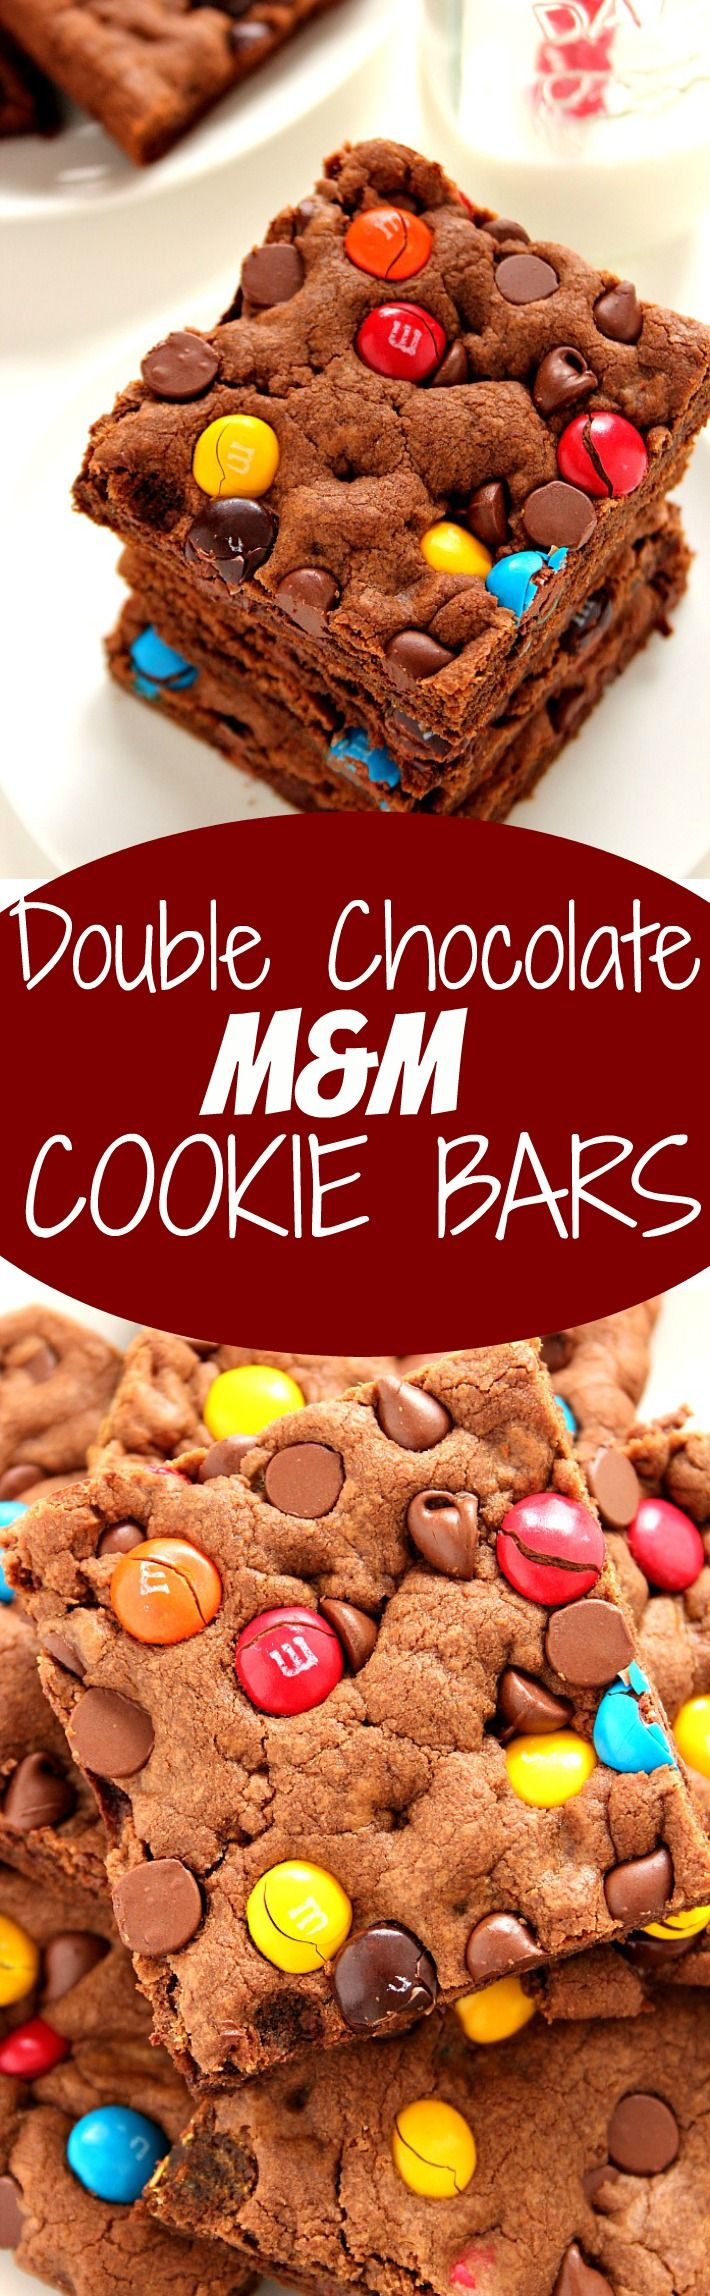 Take your cookie bars to the next level with an extra dose of chocolate with this recipe for Double Chocolate M&M'S Cookie Bars!